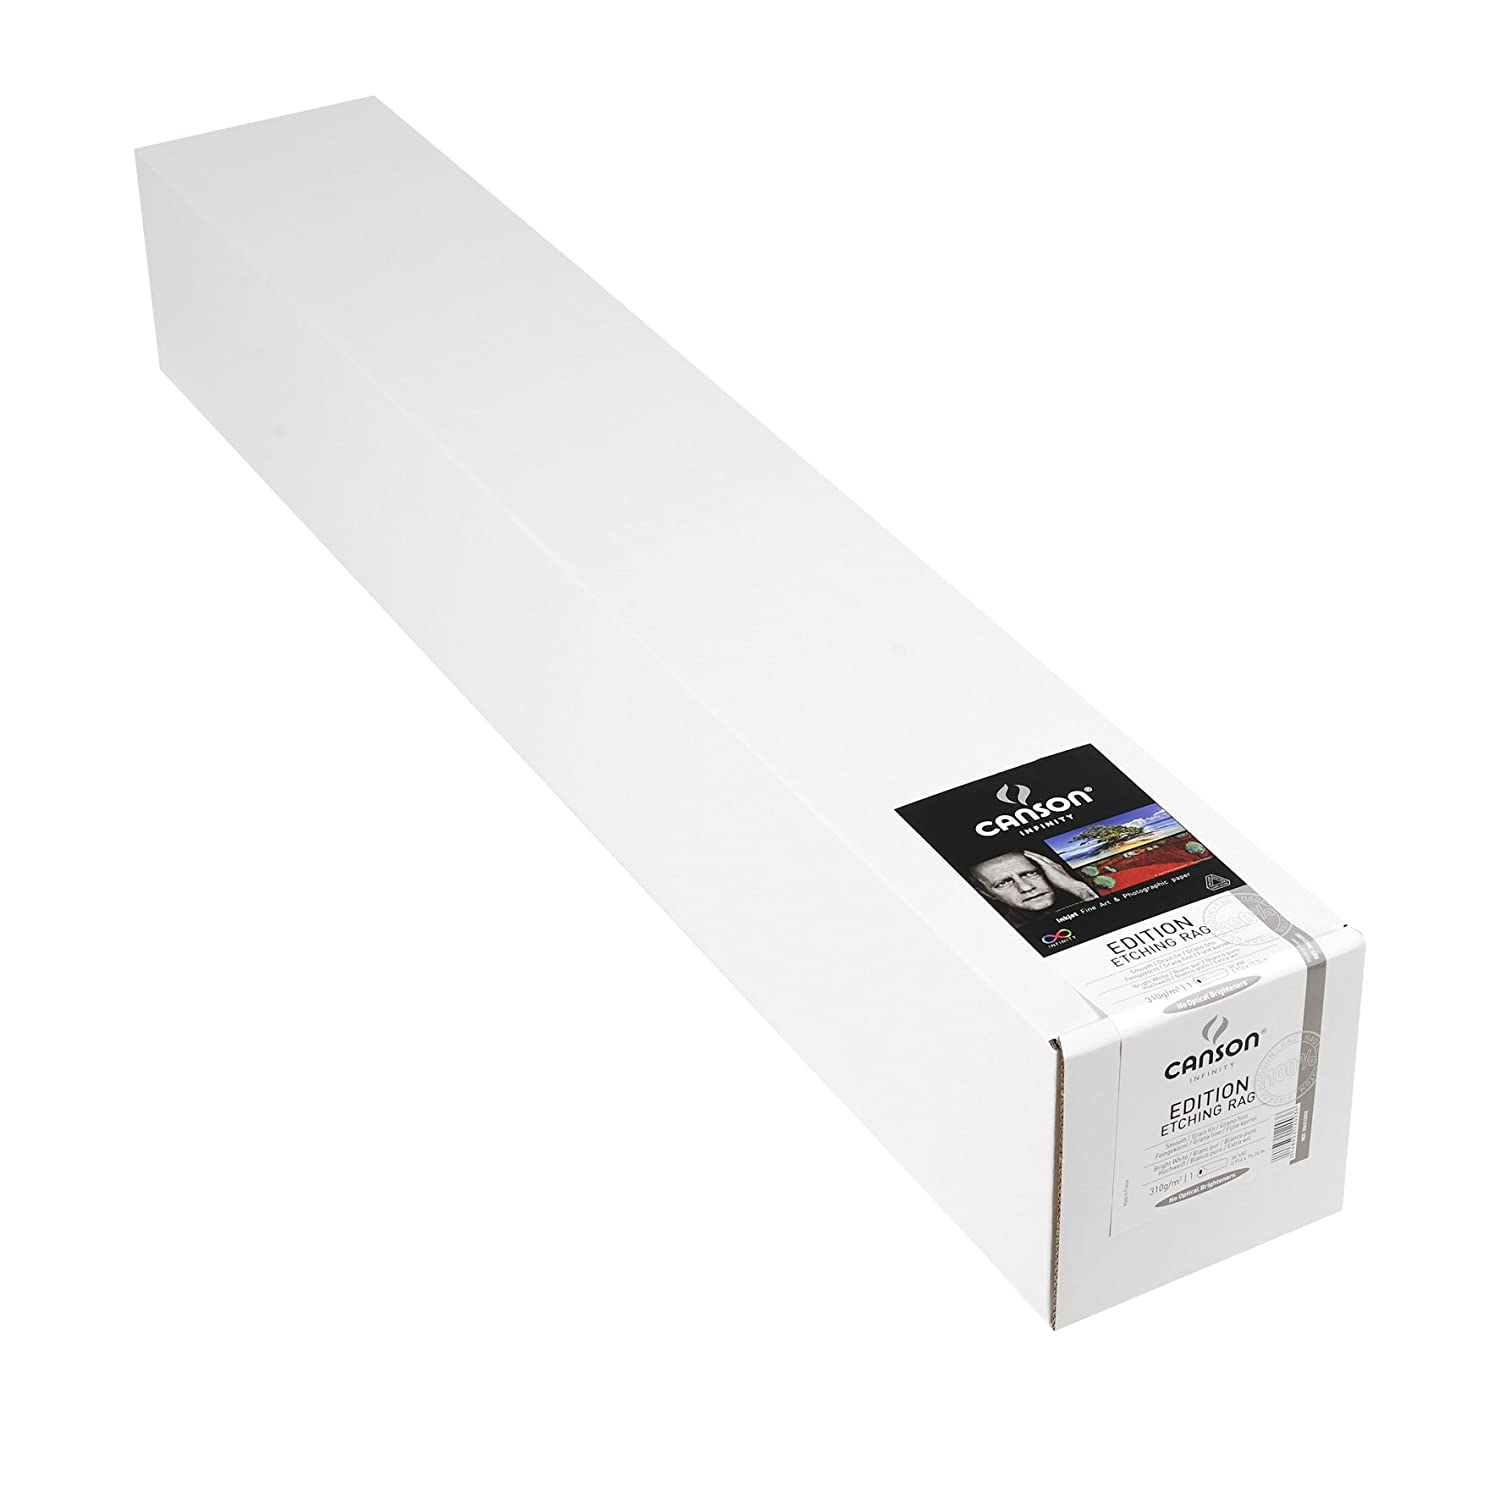 Acid Free for Printmaking 25 Sheets 8.5 x 11 Inch Canson Infinity Edition Etching Rag Fine Art Paper Bright White